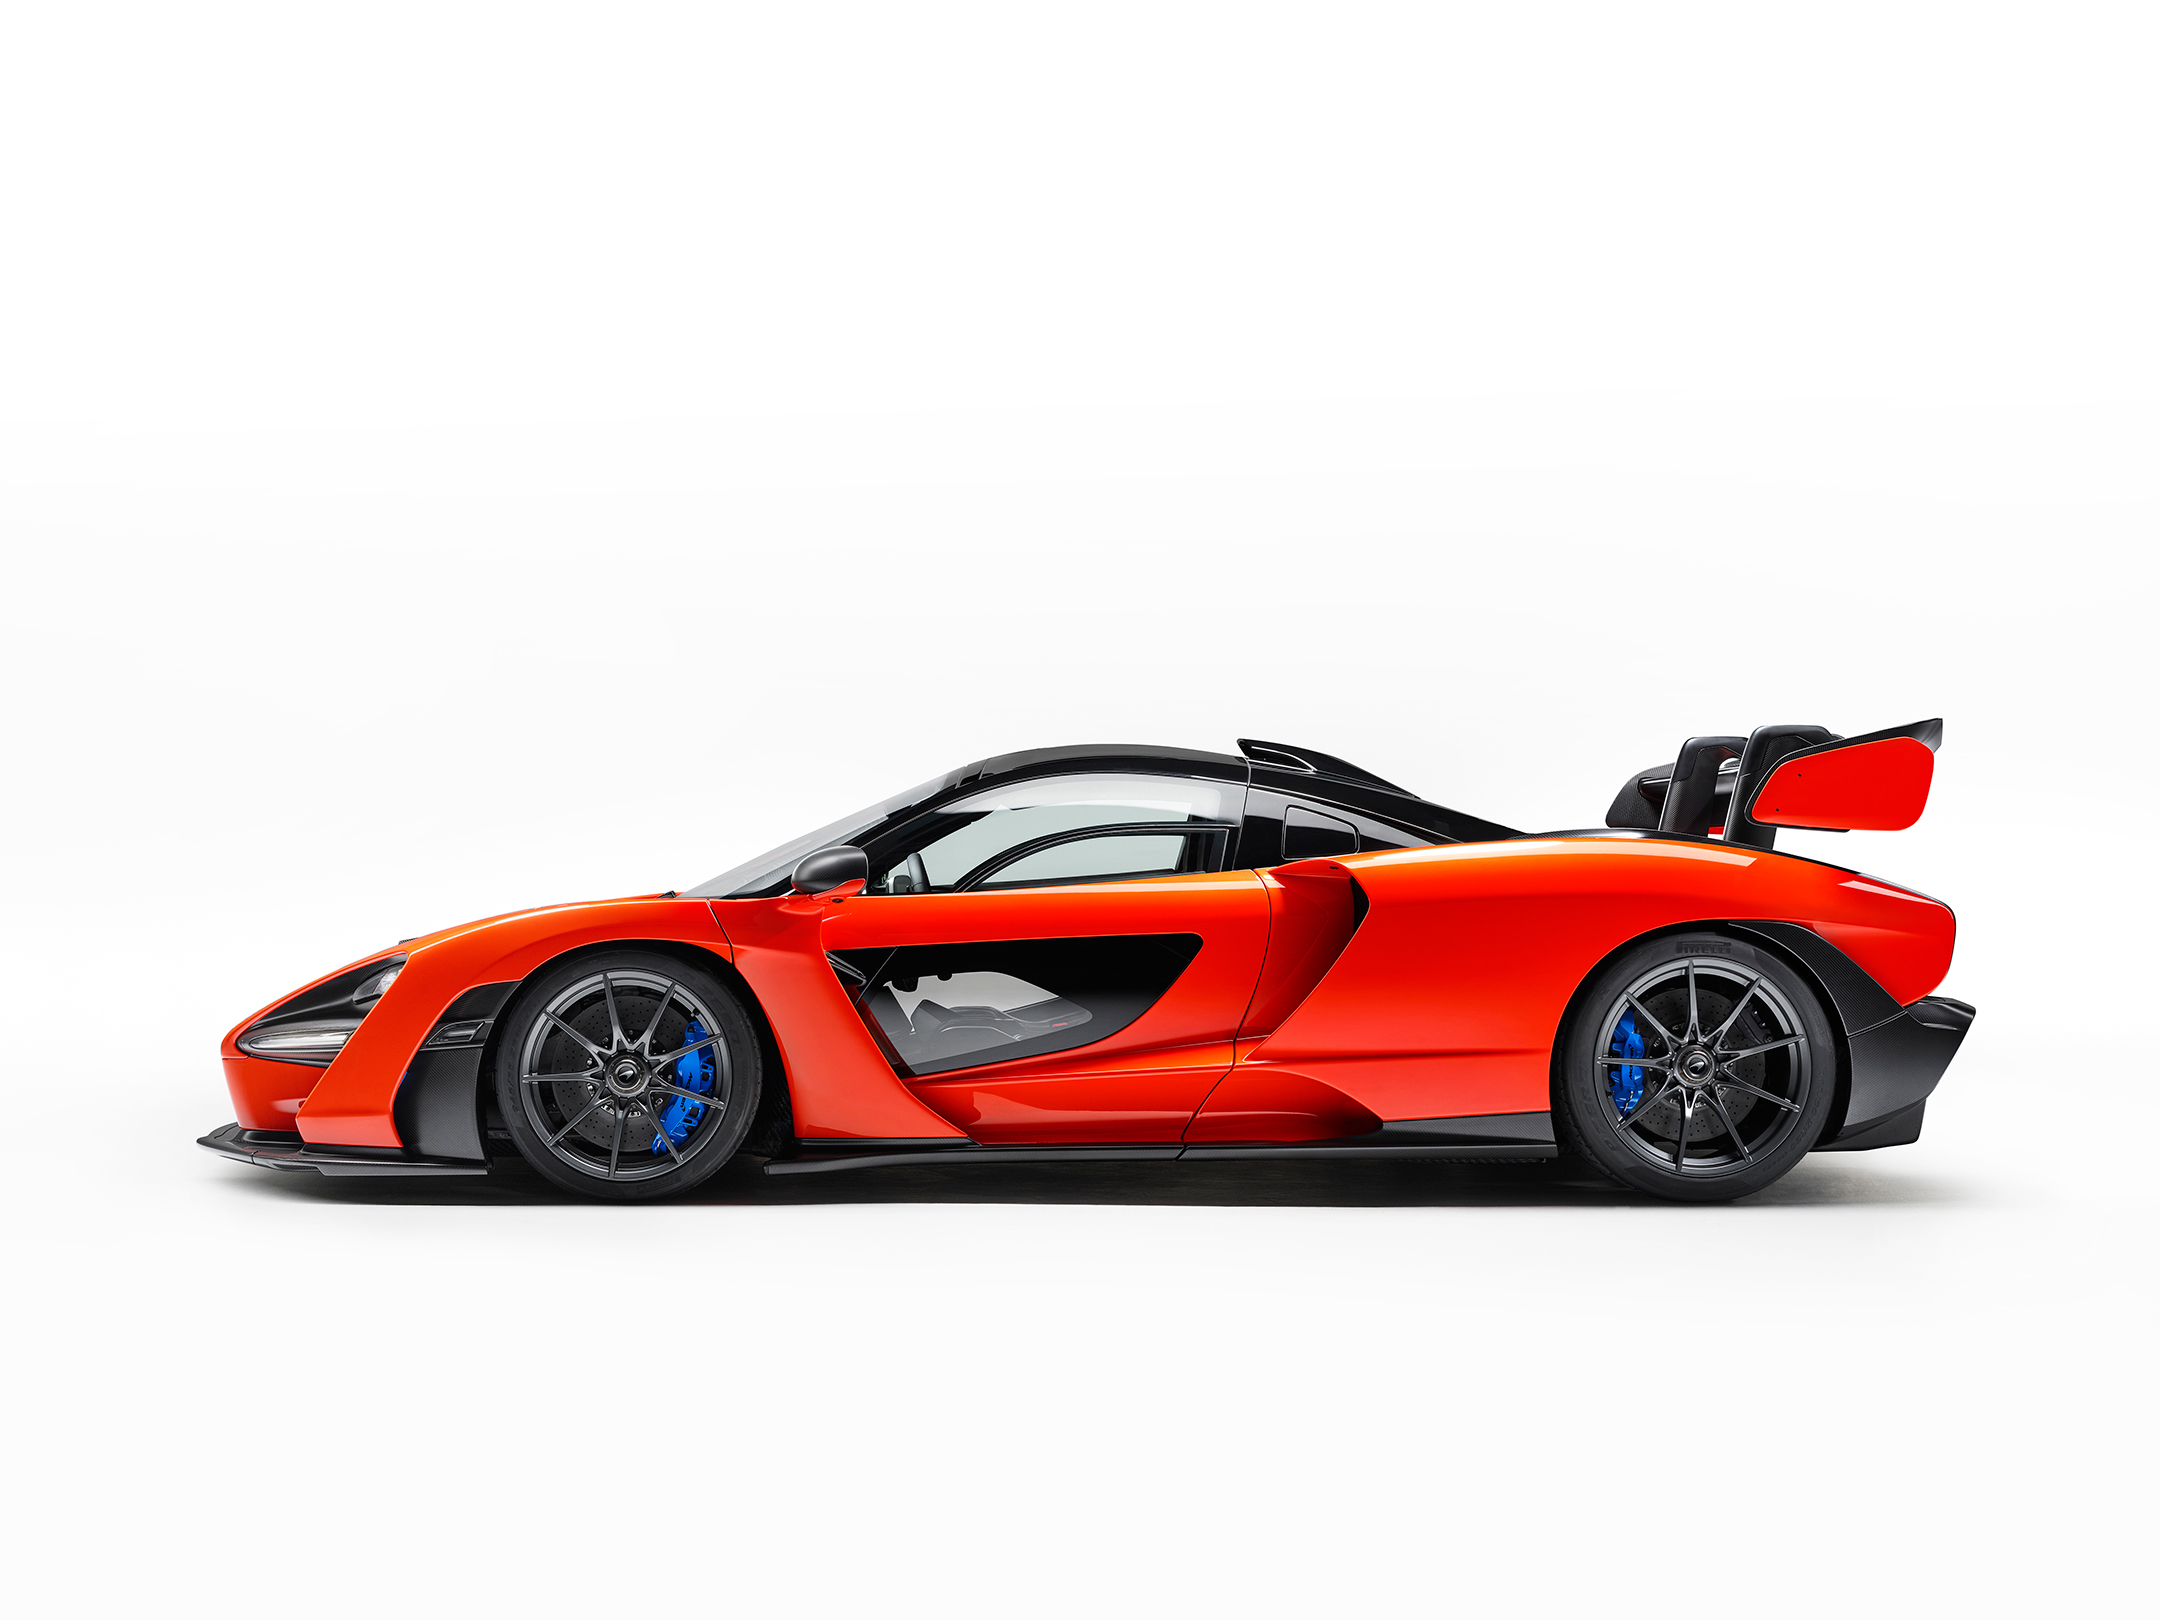 McLaren Senna - 2018 - side-face / profil